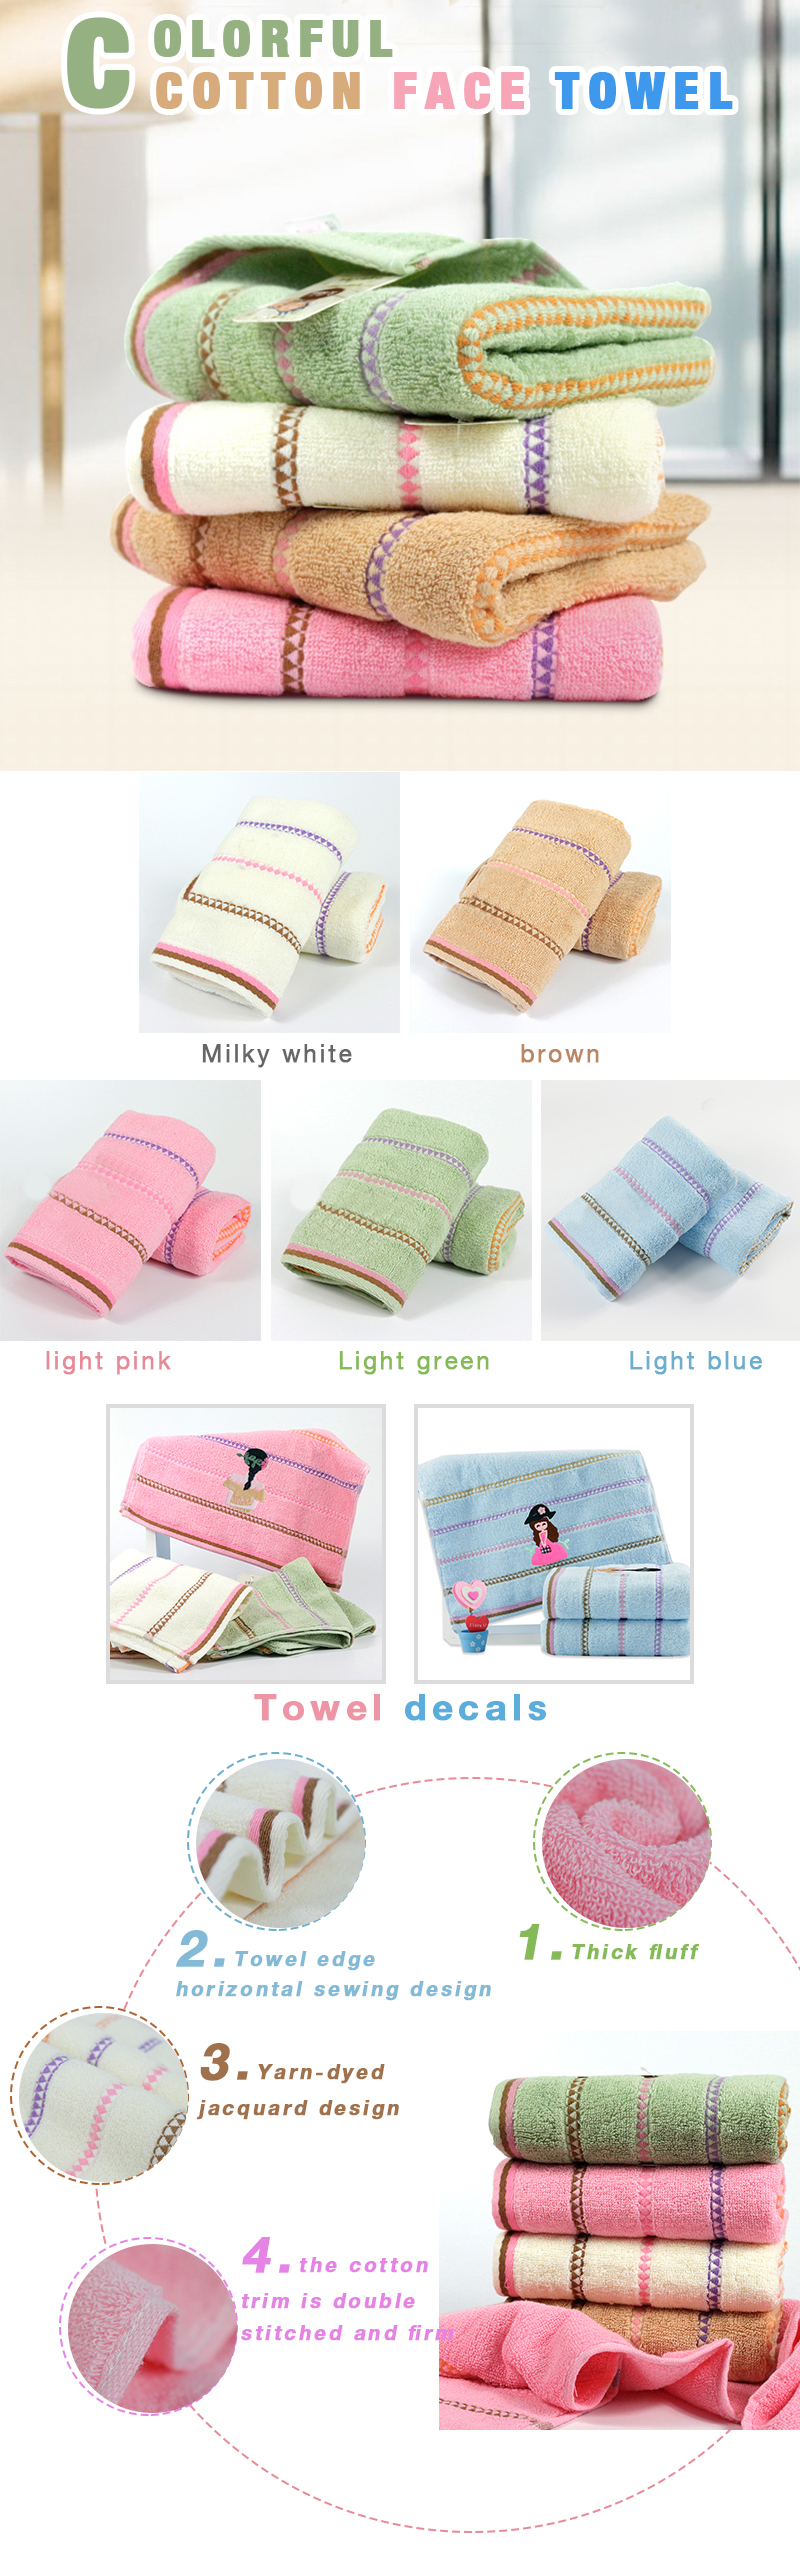 Wholesale Jacquard Embroidery Pattern Home Cotton Face towel